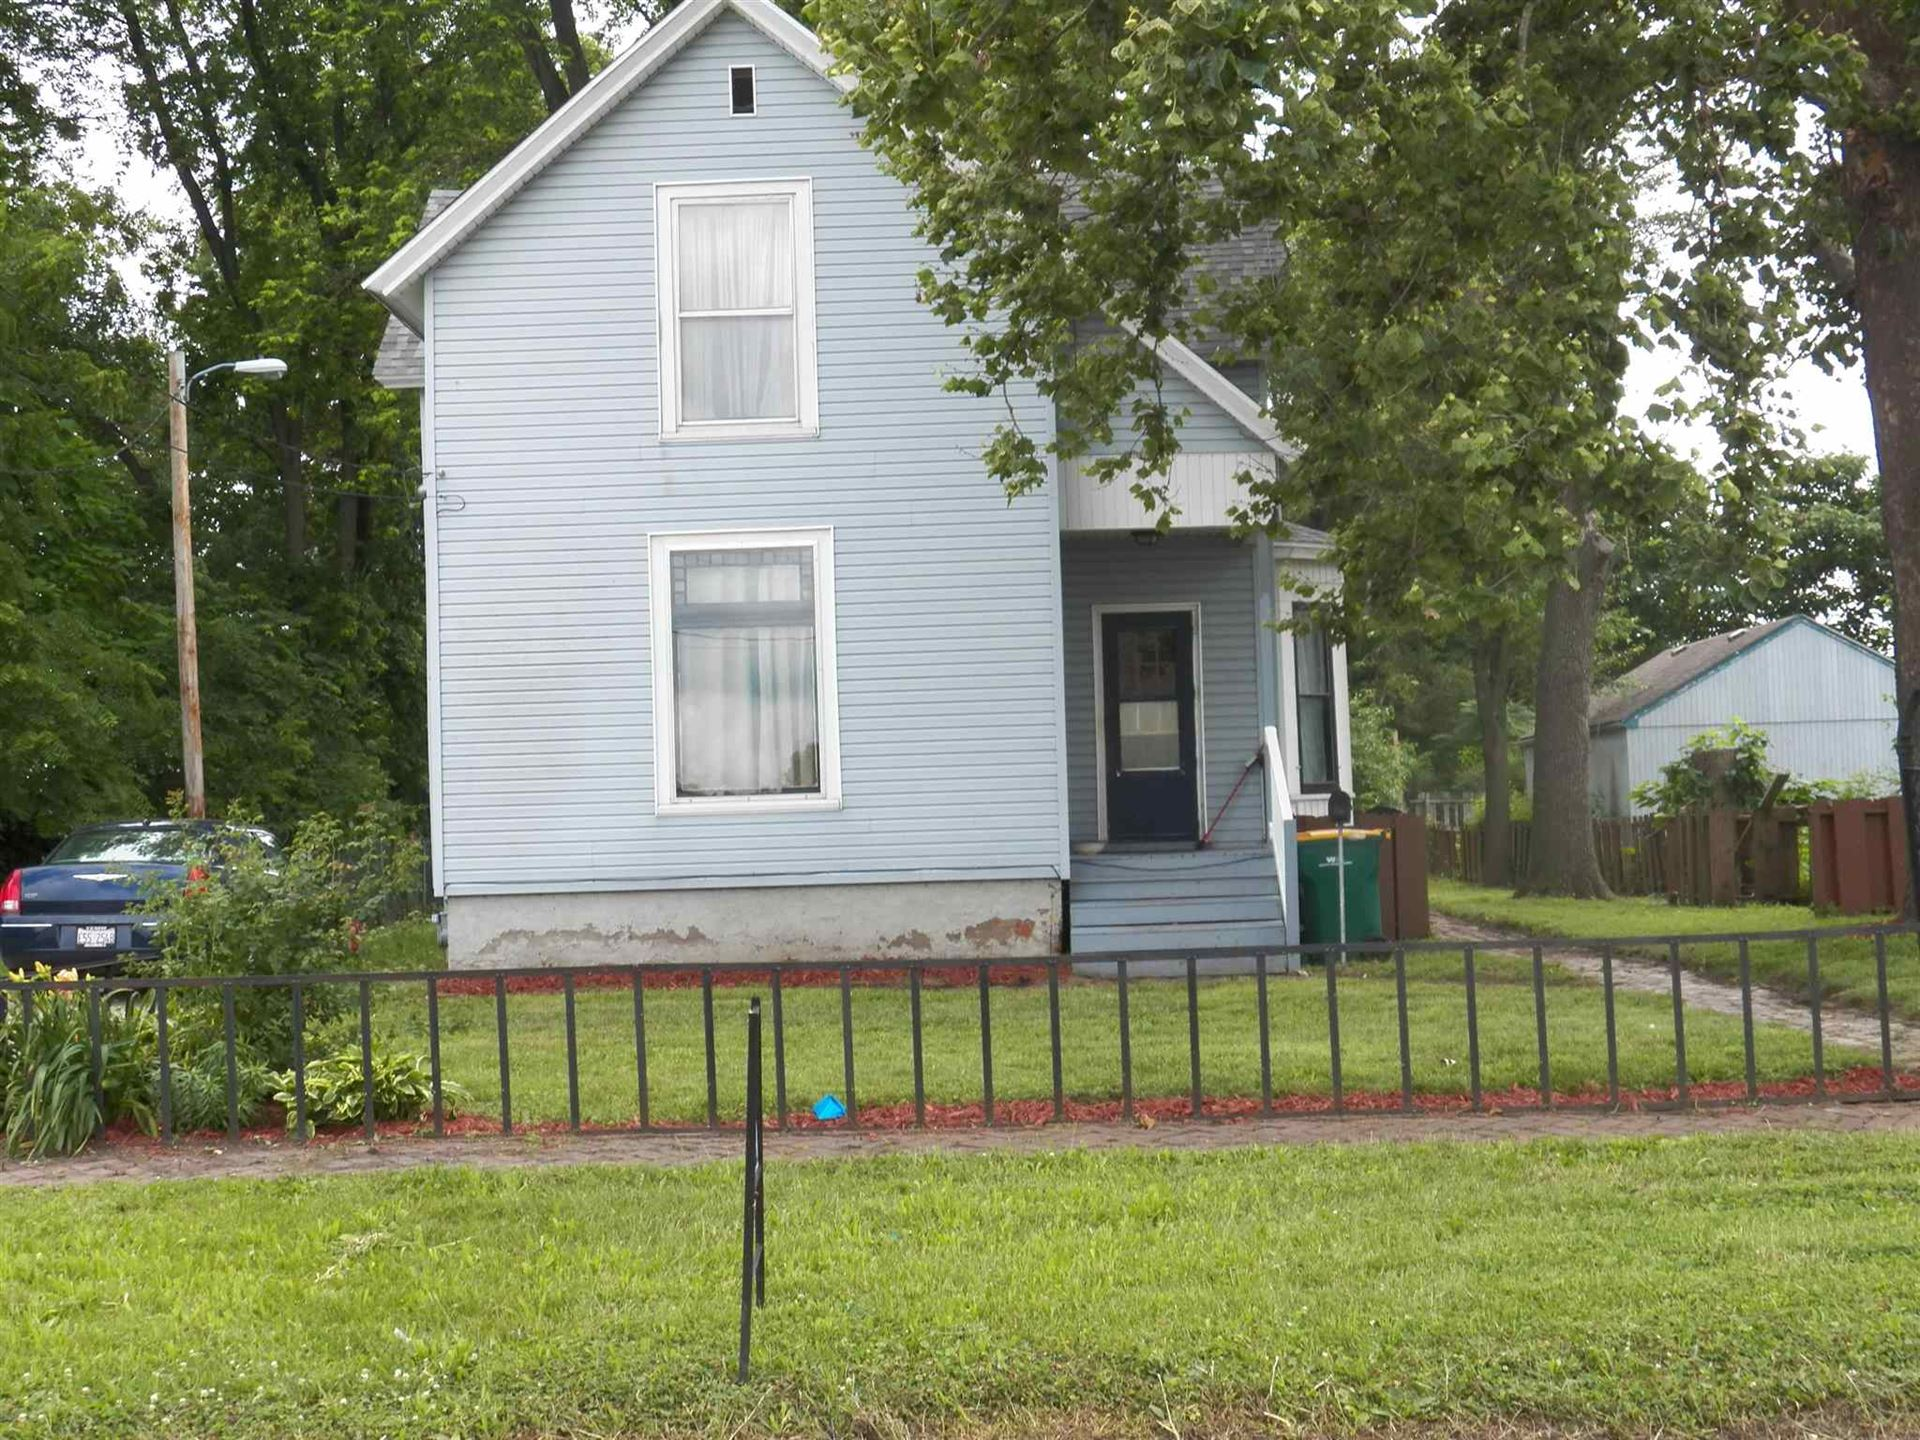 640 MULBERRY, Galesburg, IL 61488 - MLS#: CA1002549